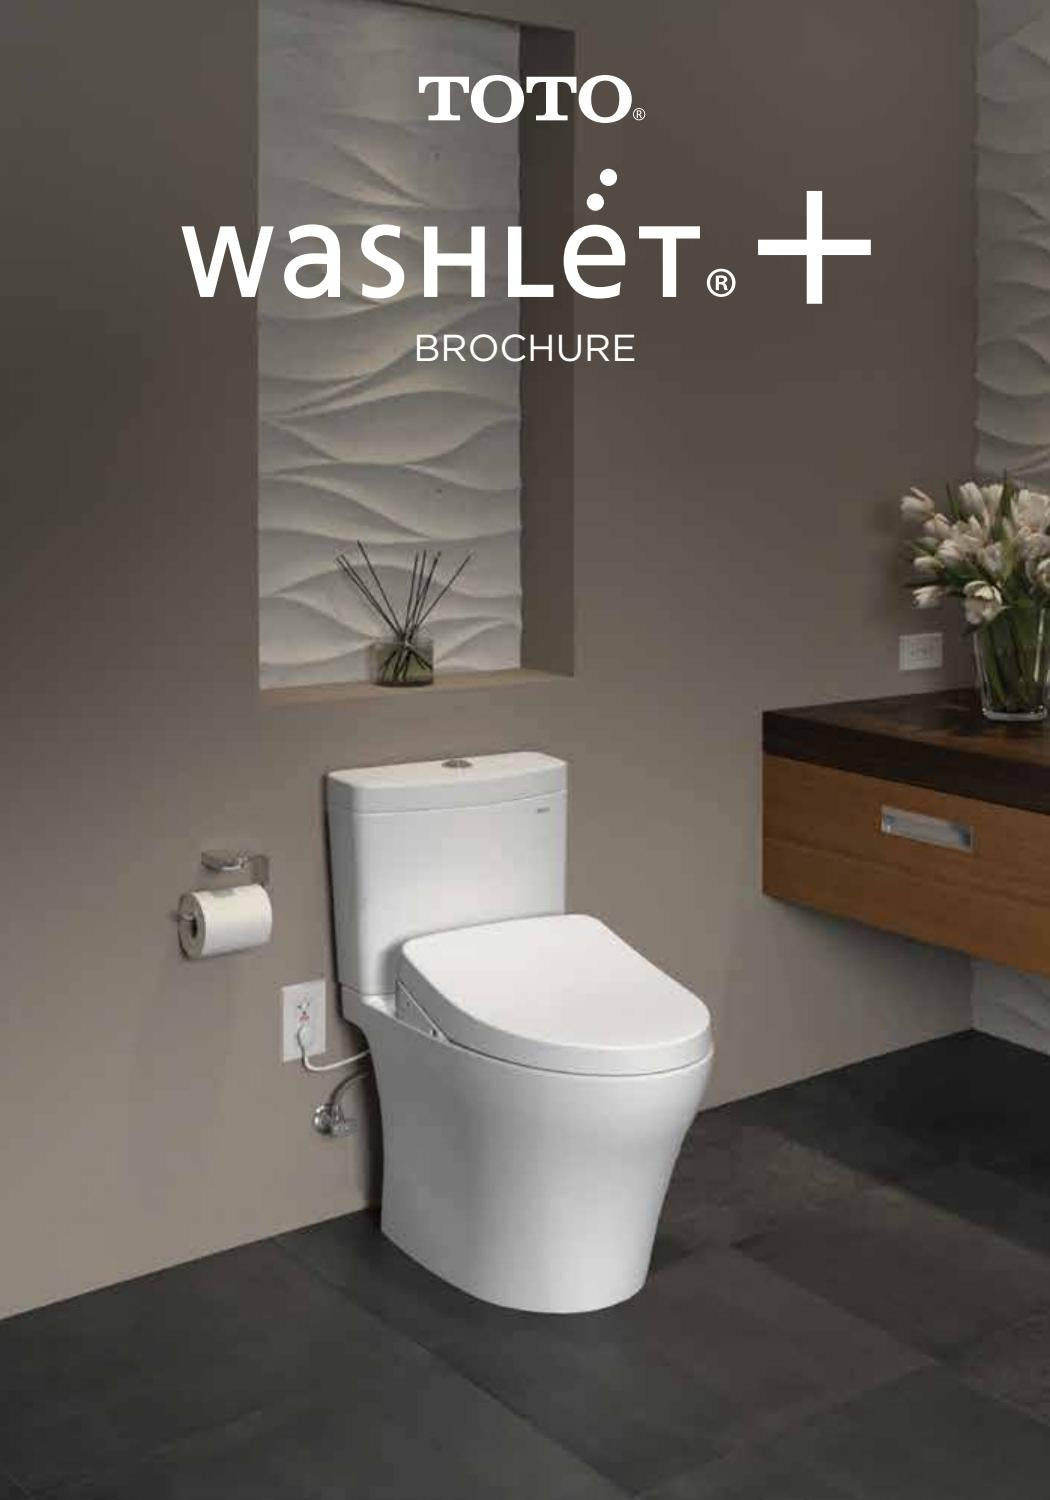 Washlet plus 2018 Brochure by The BATHROOM STORE - issuu